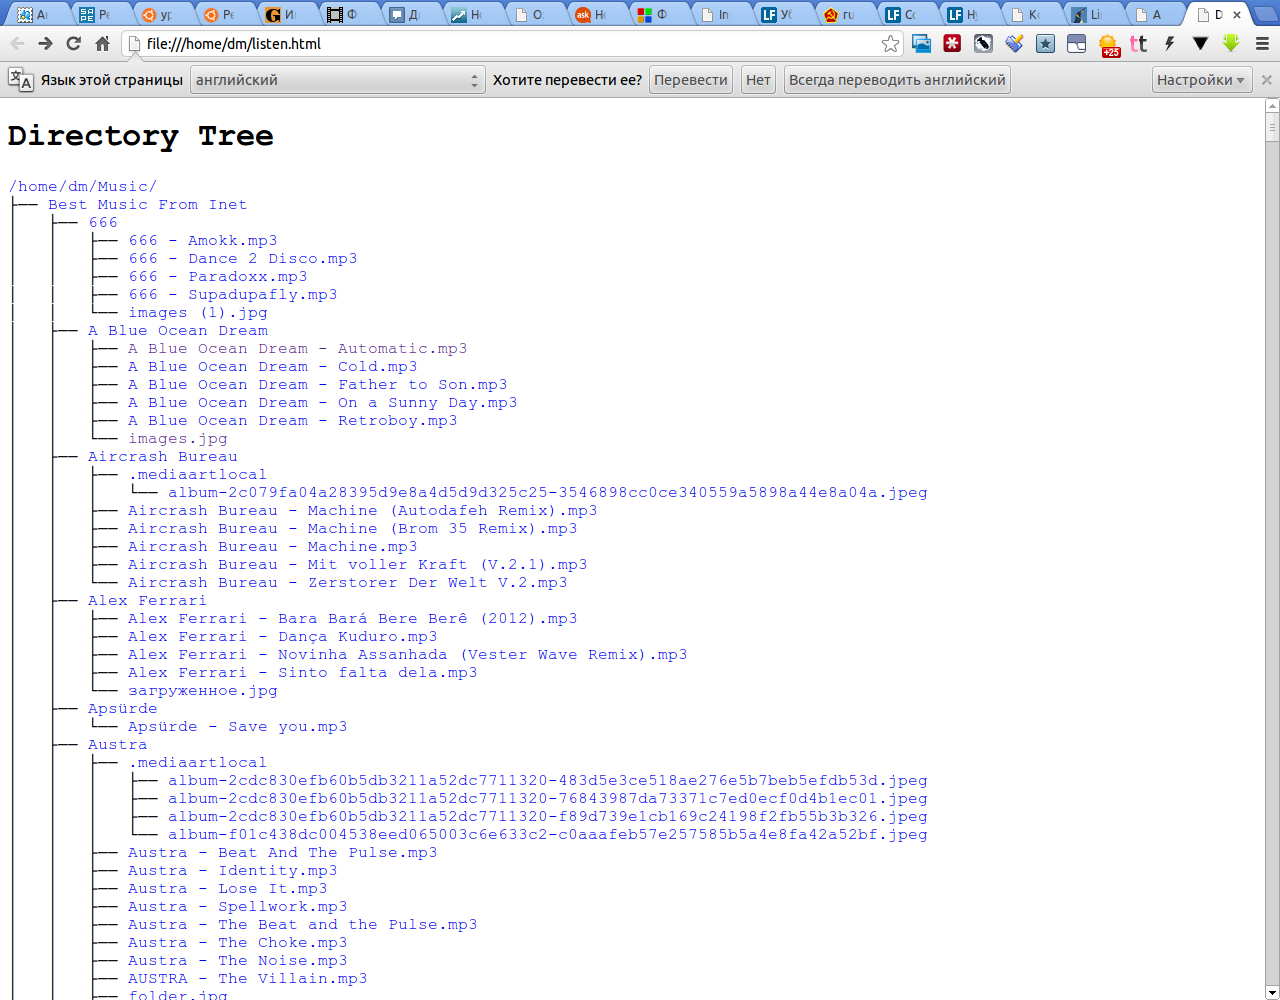 Directory Tree - Google Chrome_371